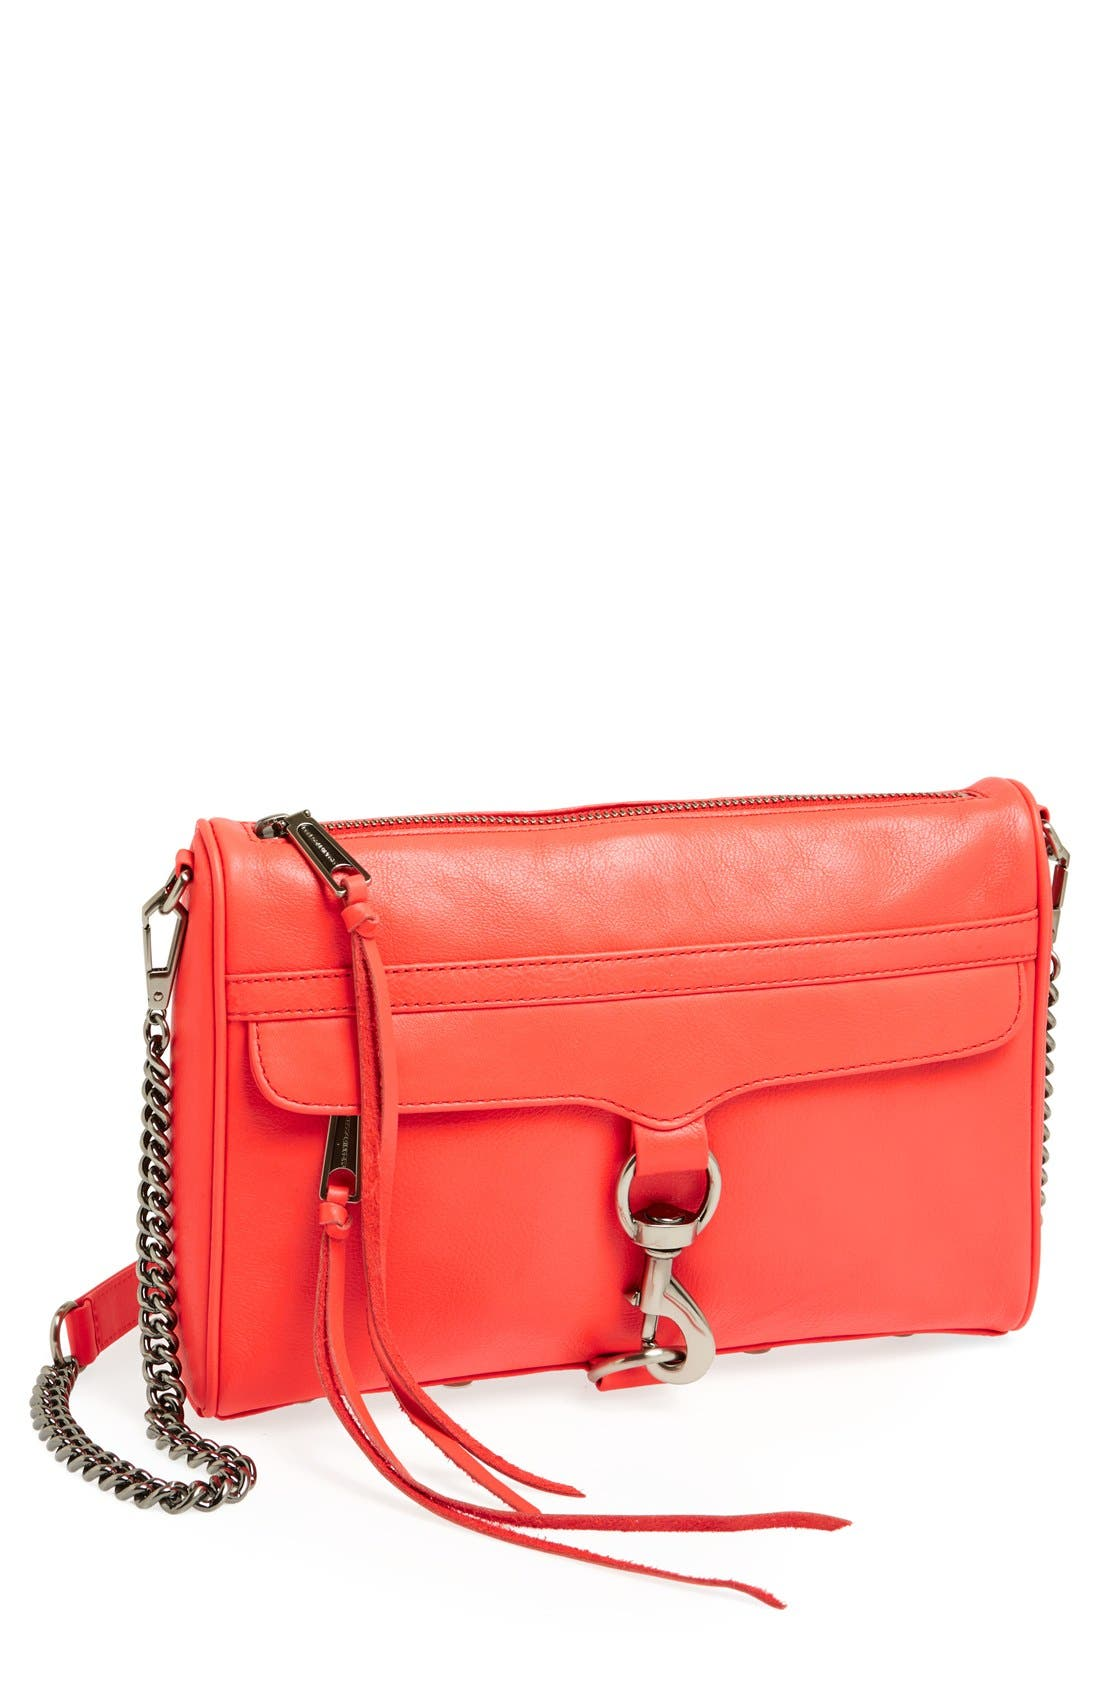 Main Image - Rebecca Minkoff 'MAC Clutch' Crossbody Bag